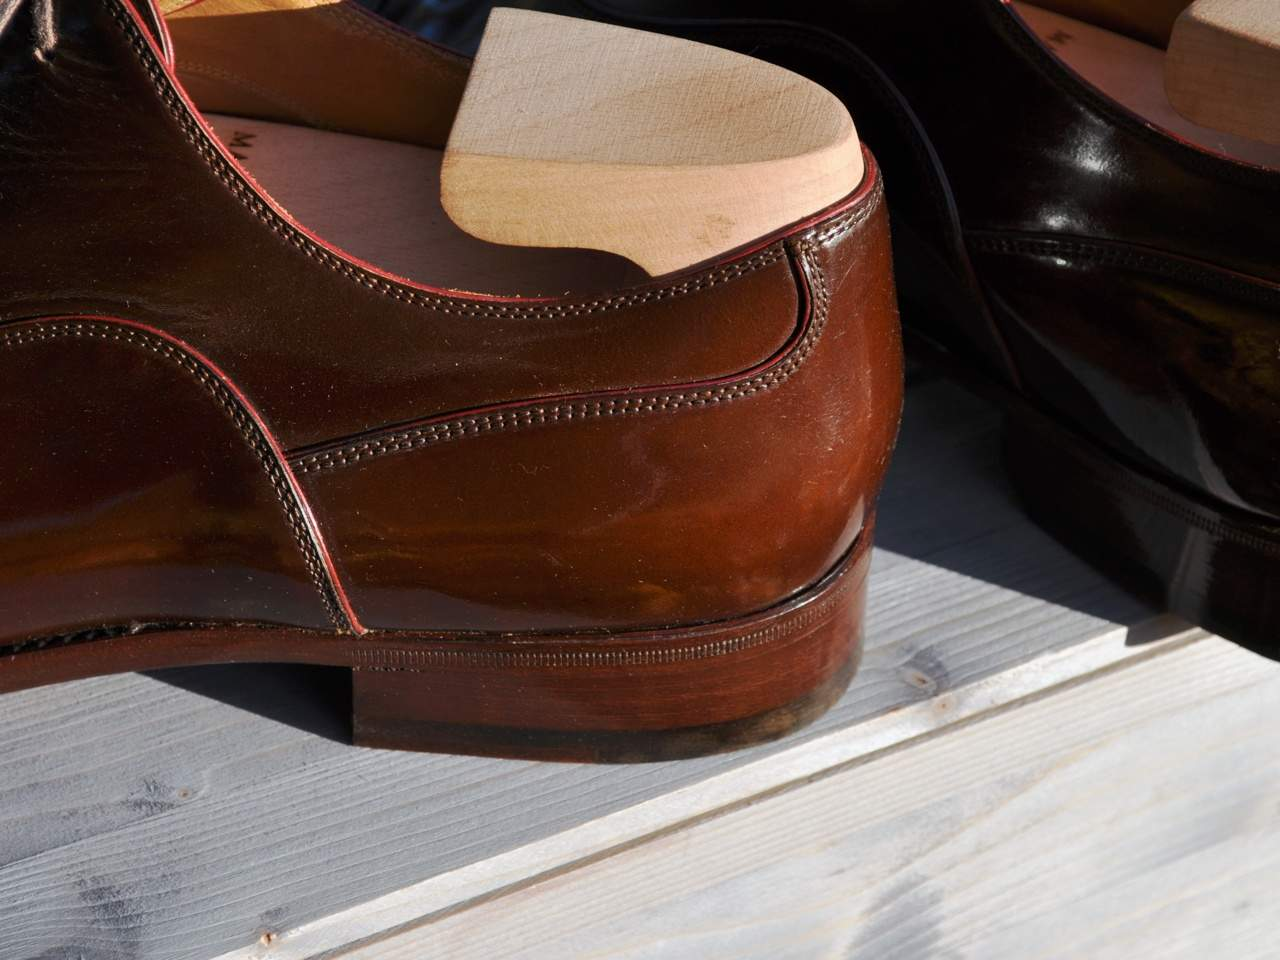 Seamless heel and the clean curvature of seams give the shoes a classic, elegant look